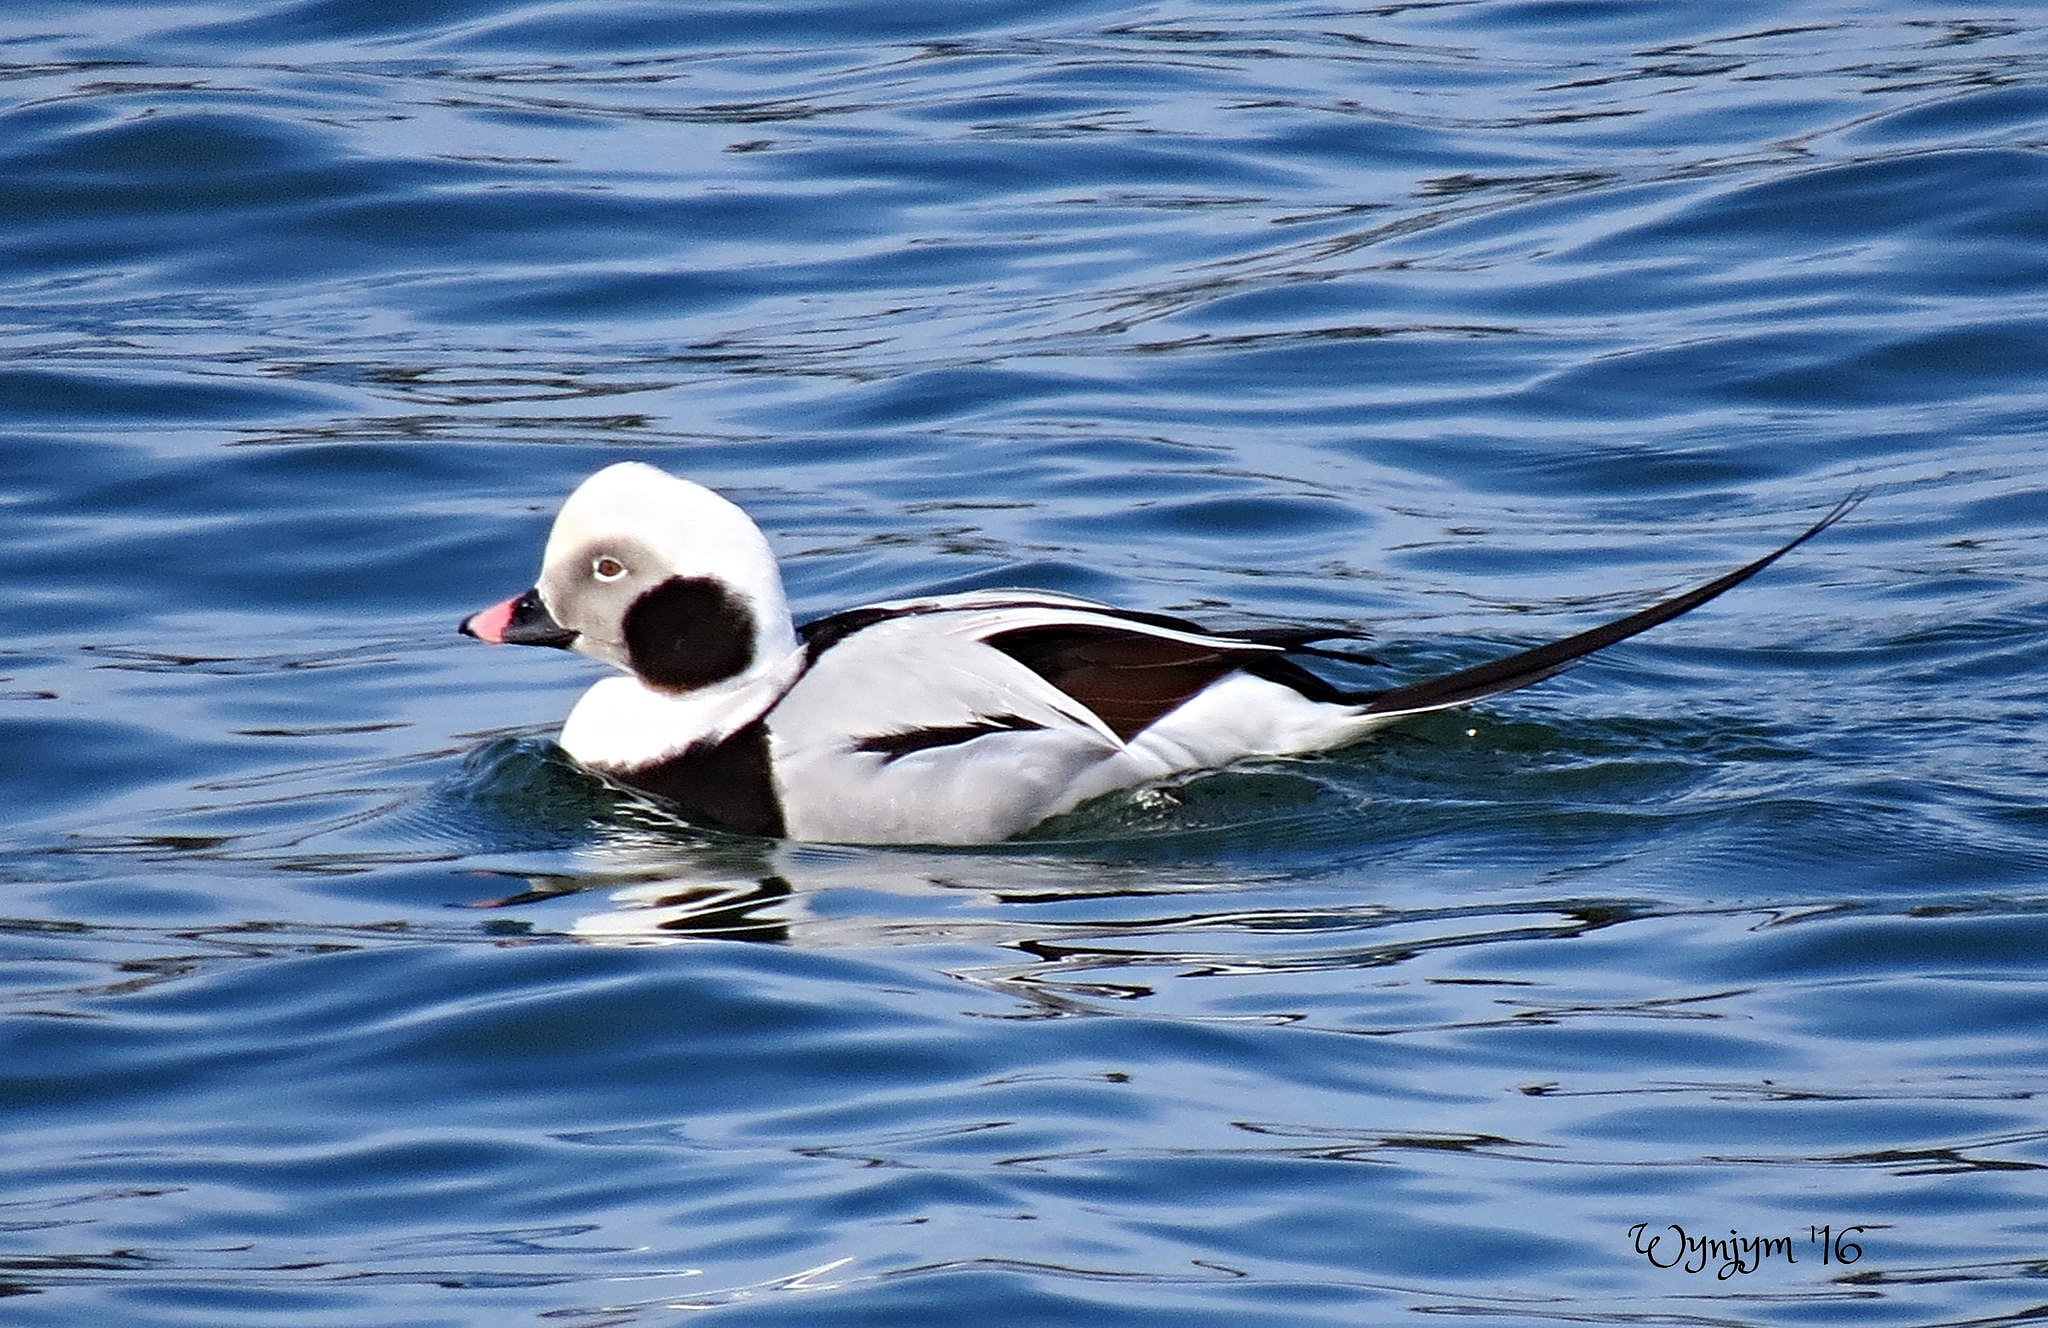 Longtailed duck in winter clothes ...  by Wynjym ChrisNP